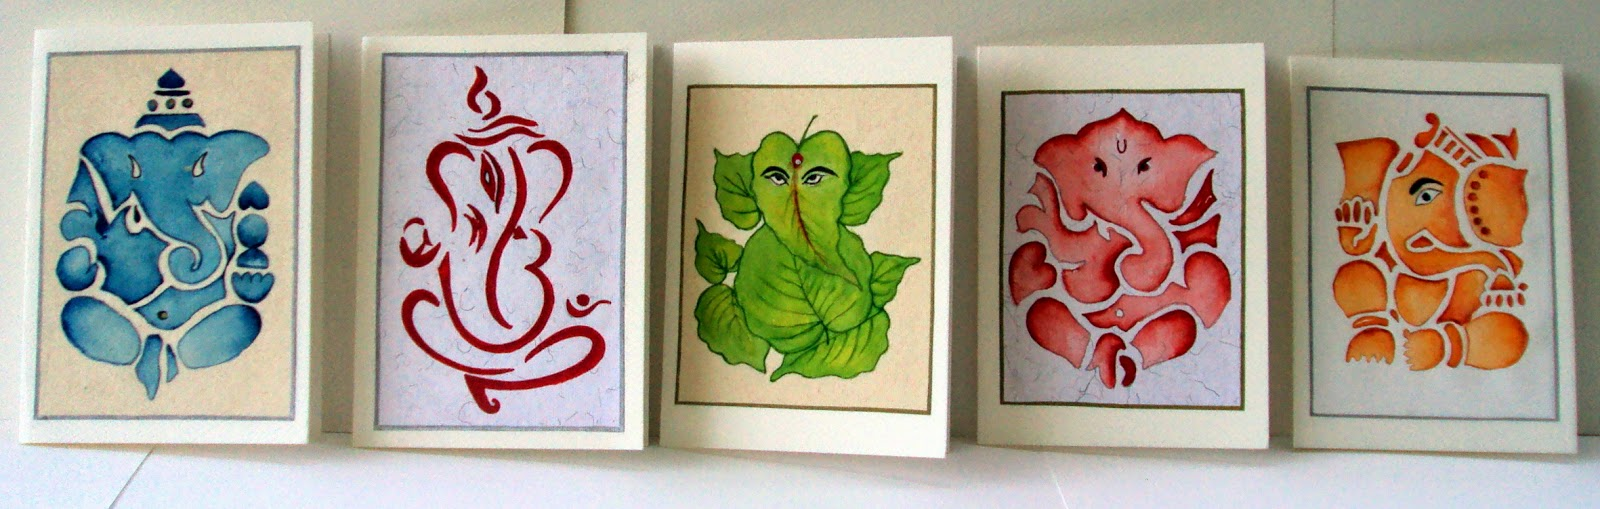 ganesha, ganesh, religious, cards, art, handmade, painted, watercolor